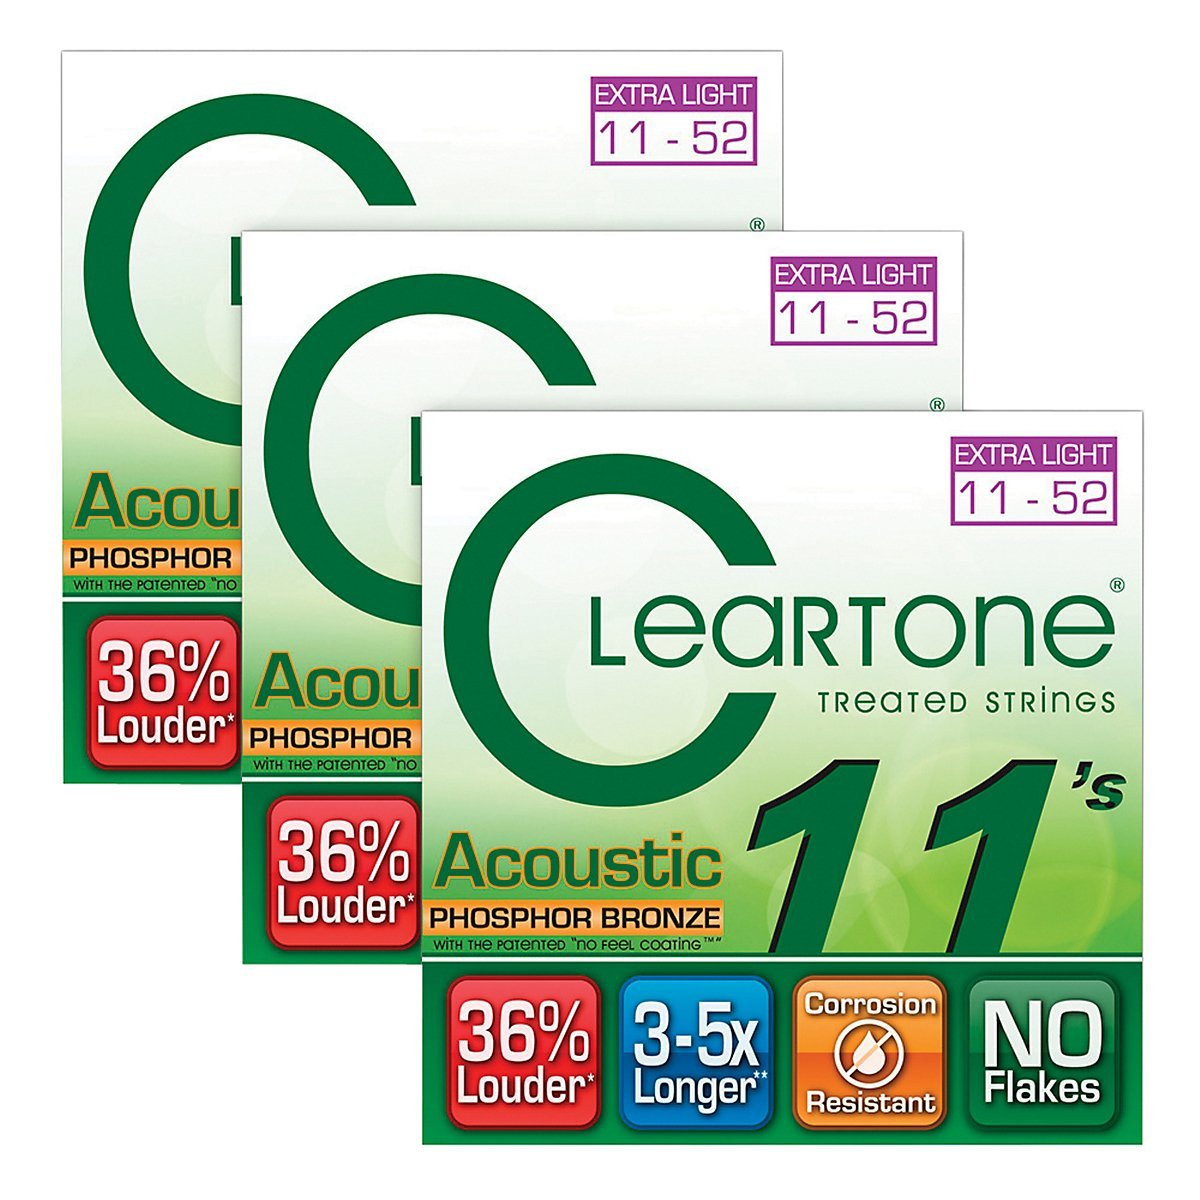 Cleartone Coated Extra Light Acoustic Guitar Strings